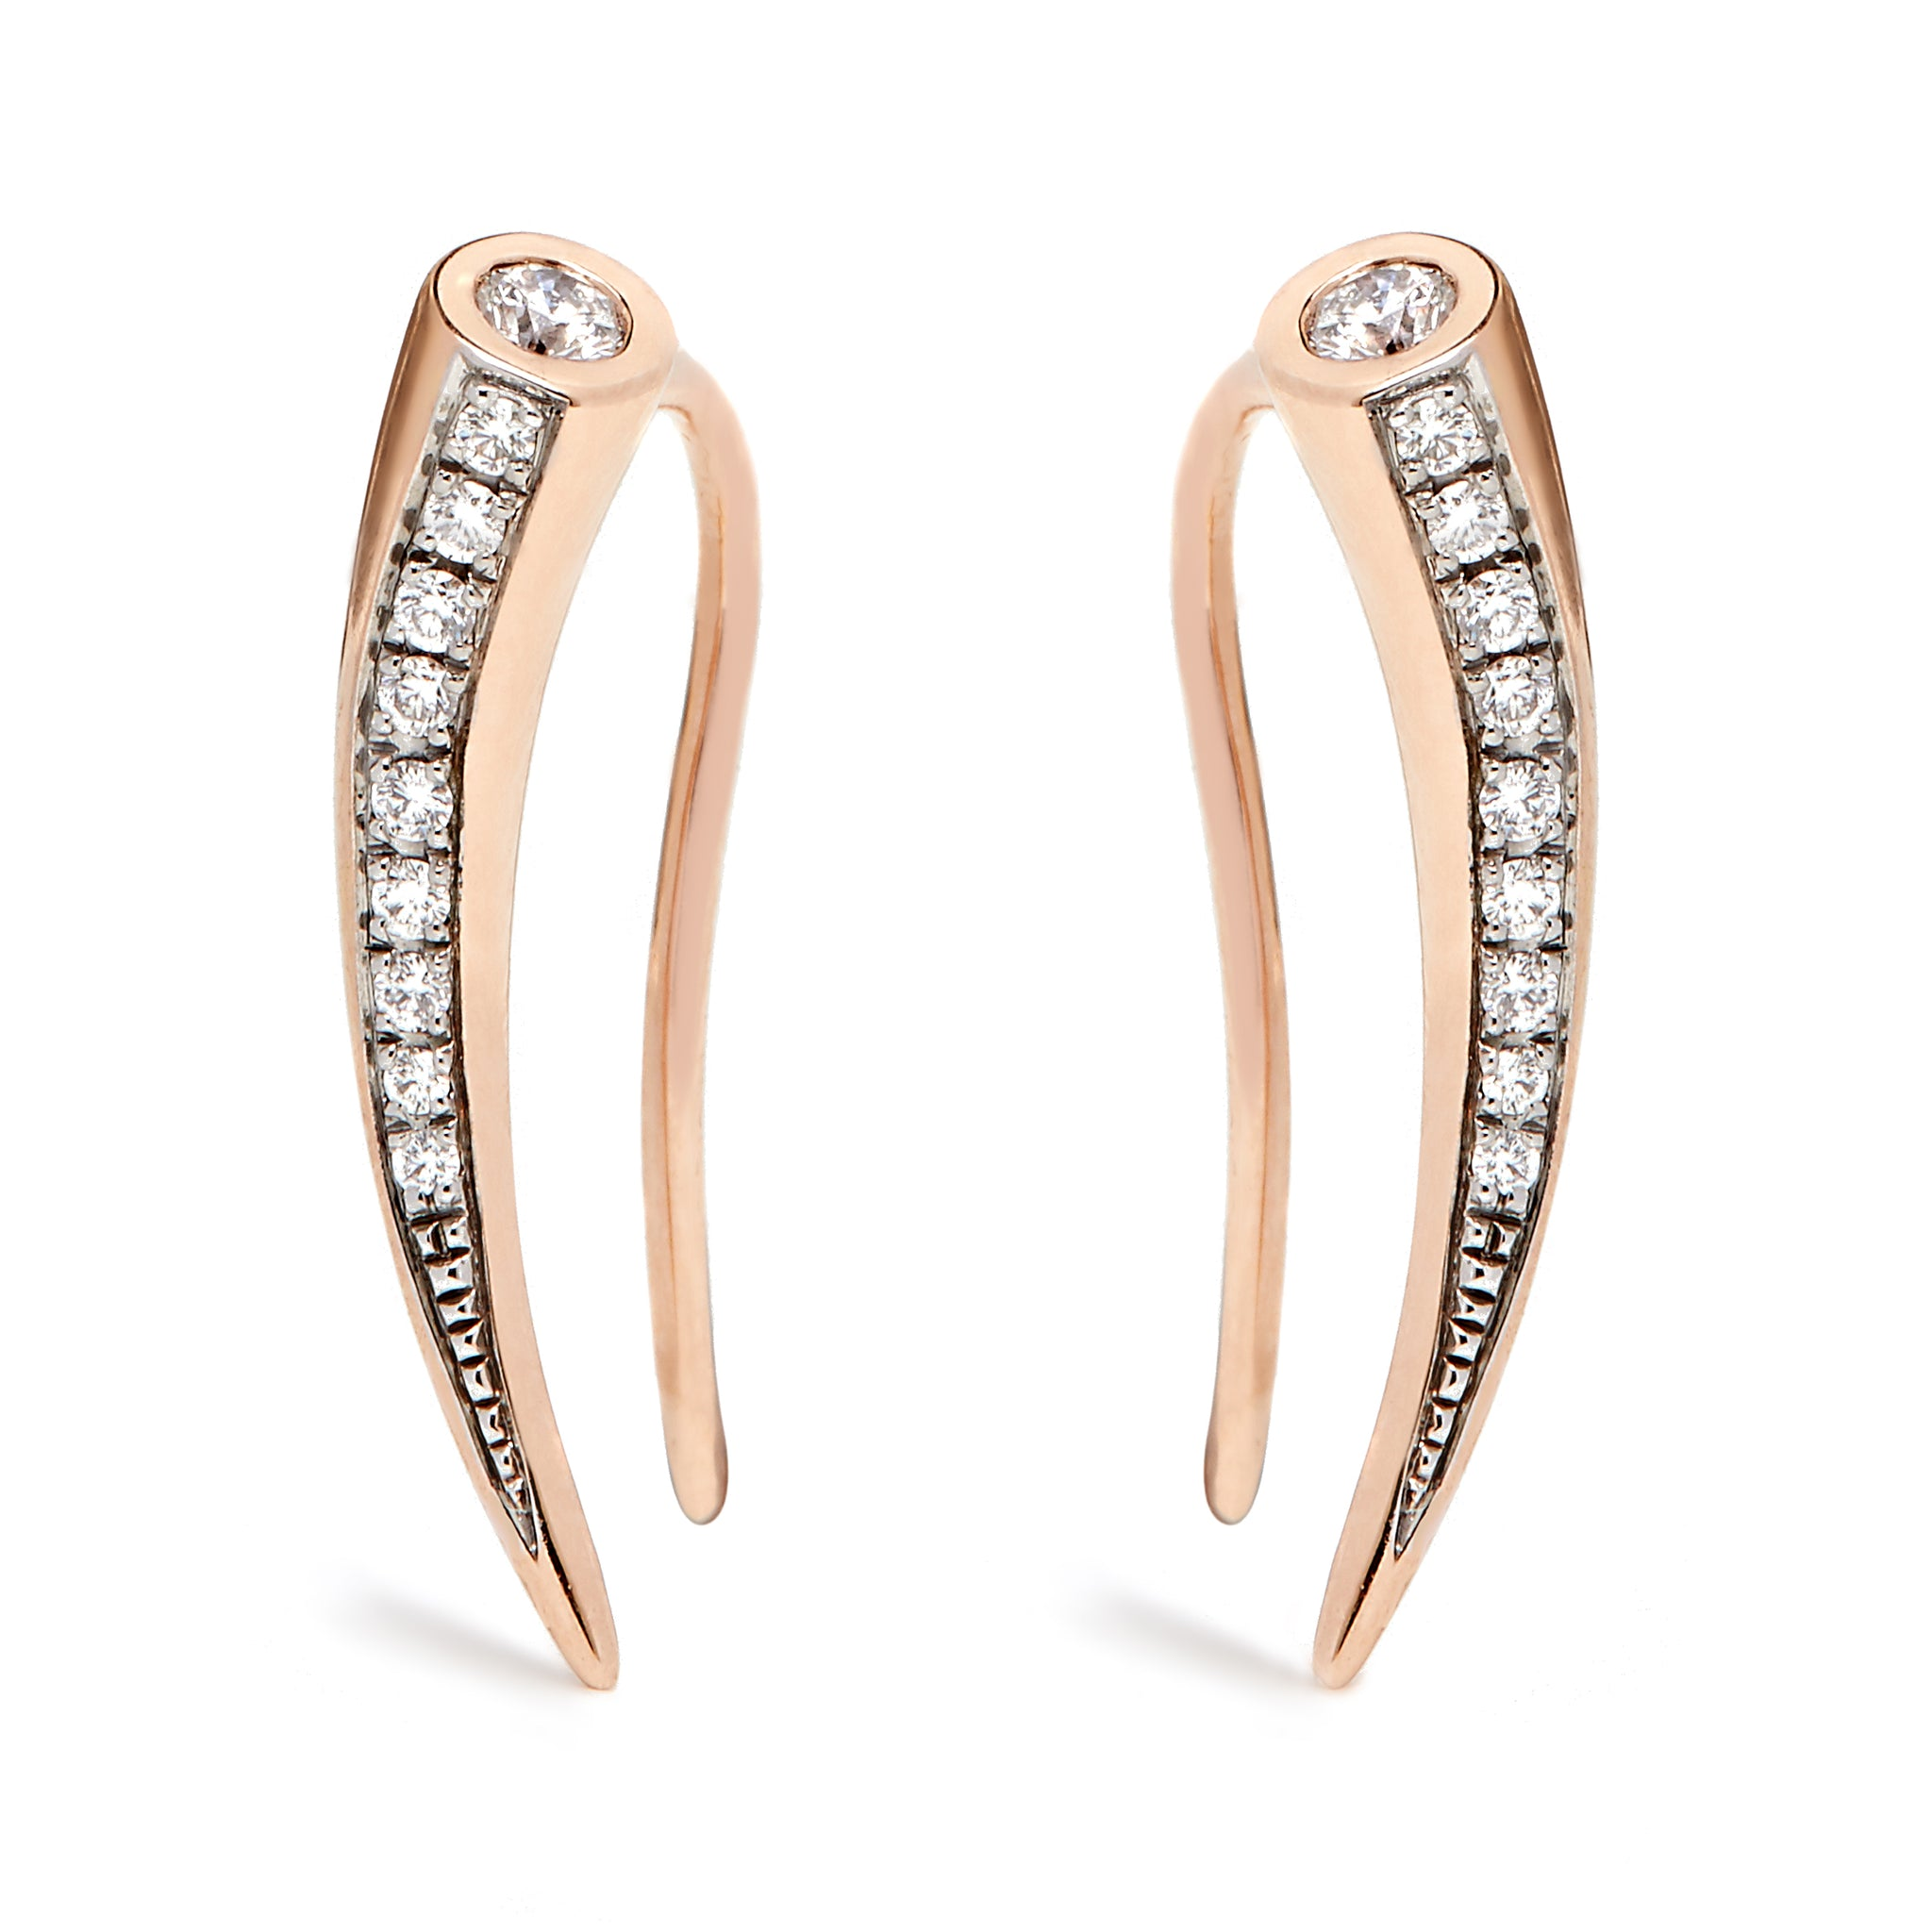 Chiawa Earrings - Rose Gold and Diamond